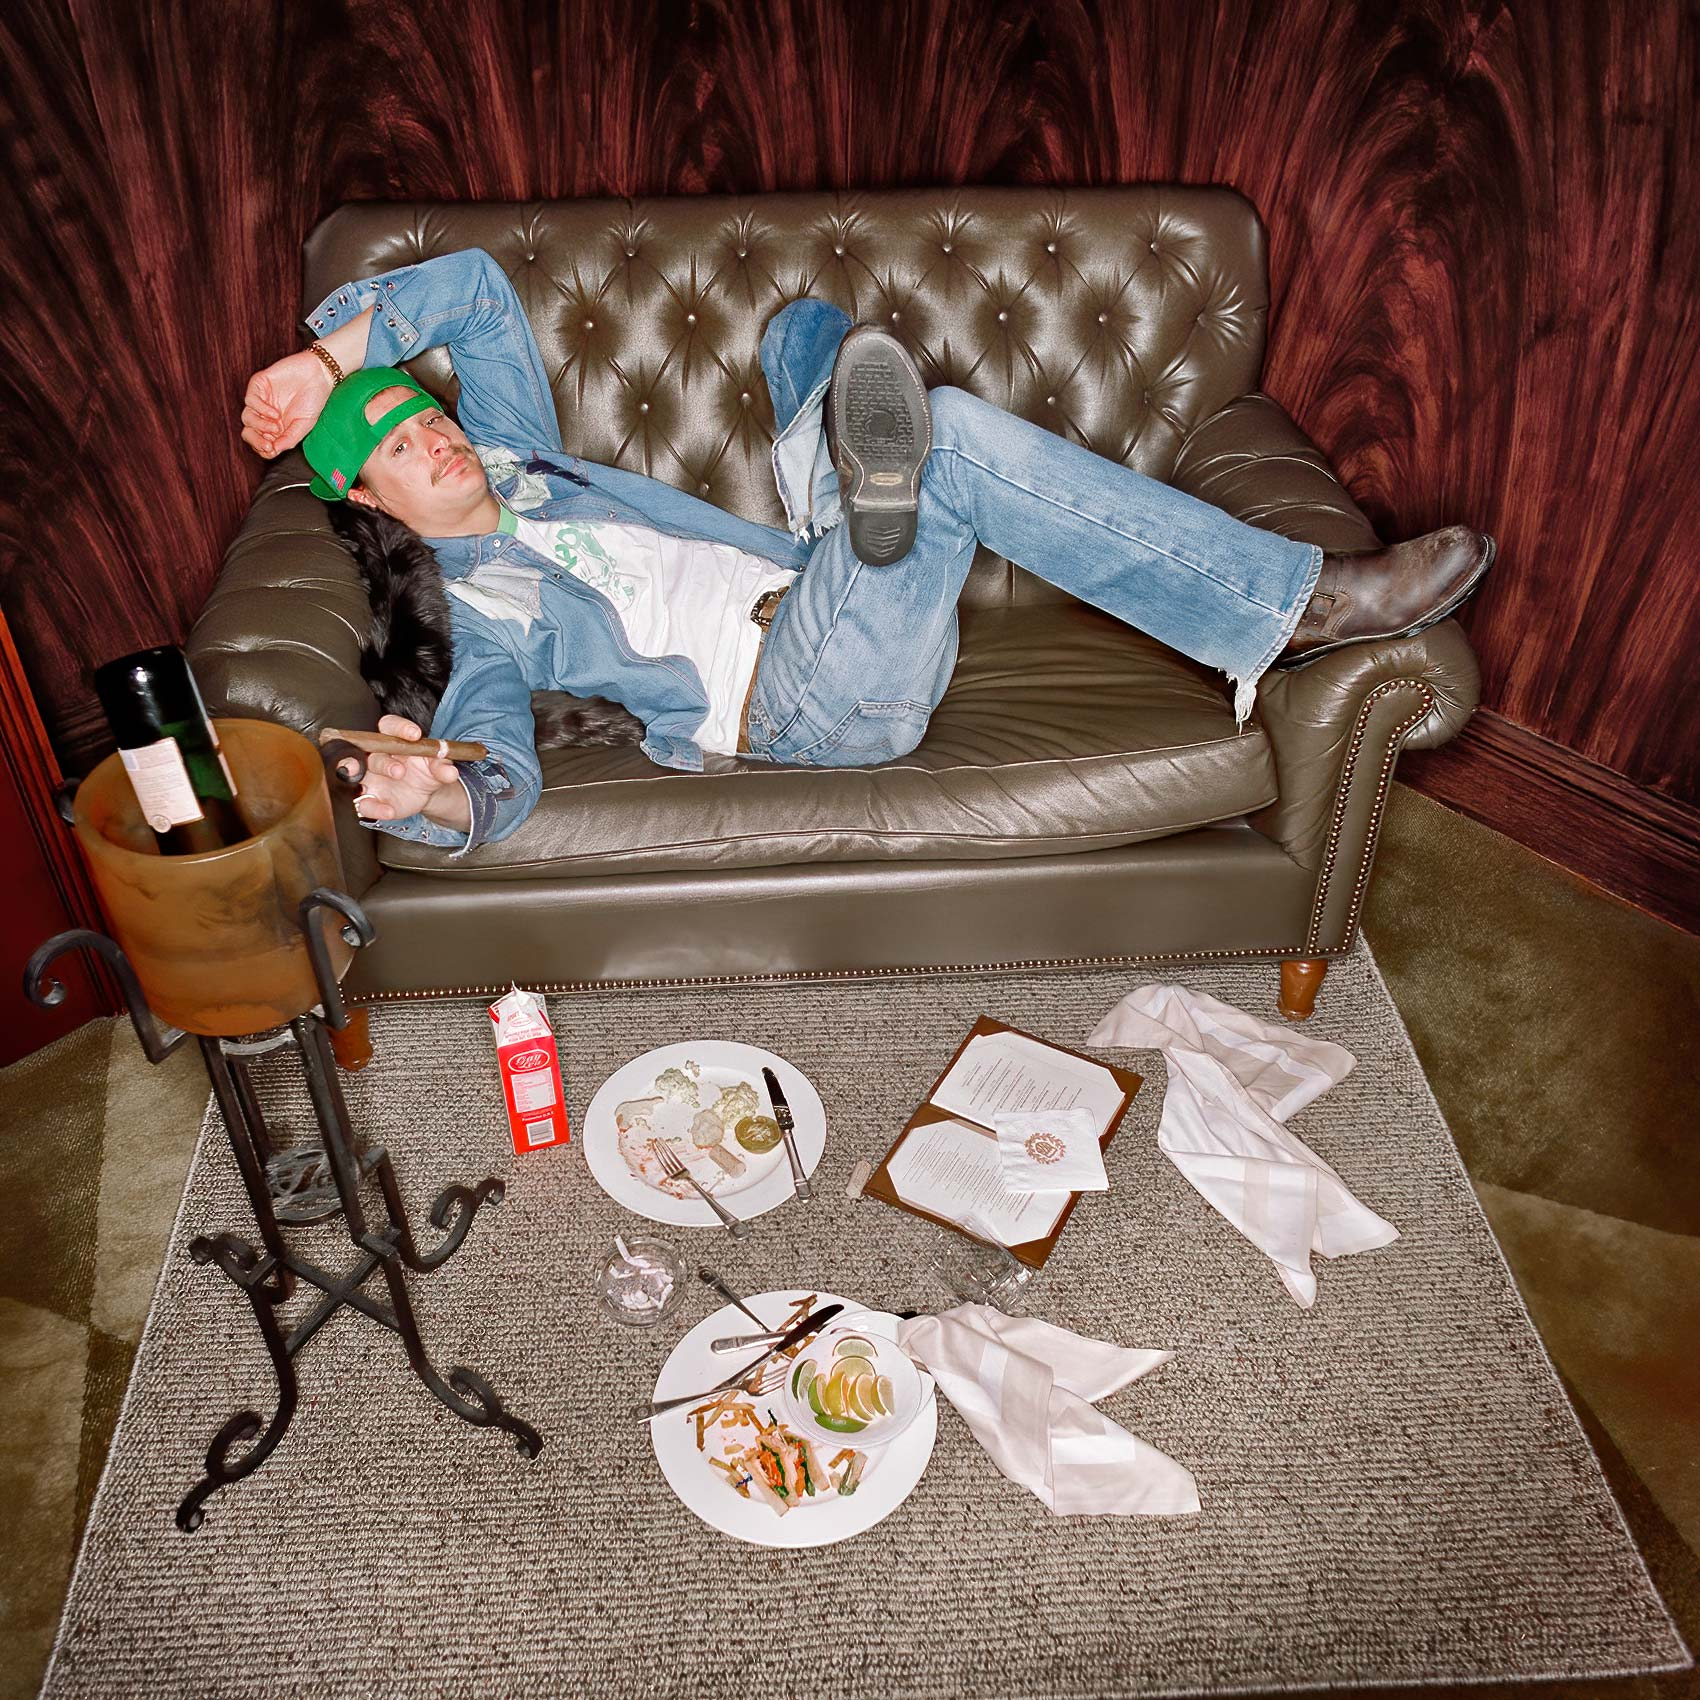 celebrity-and-singer-kid-rock-poses-for-an-amazing-portrait-in-his-hotel-room